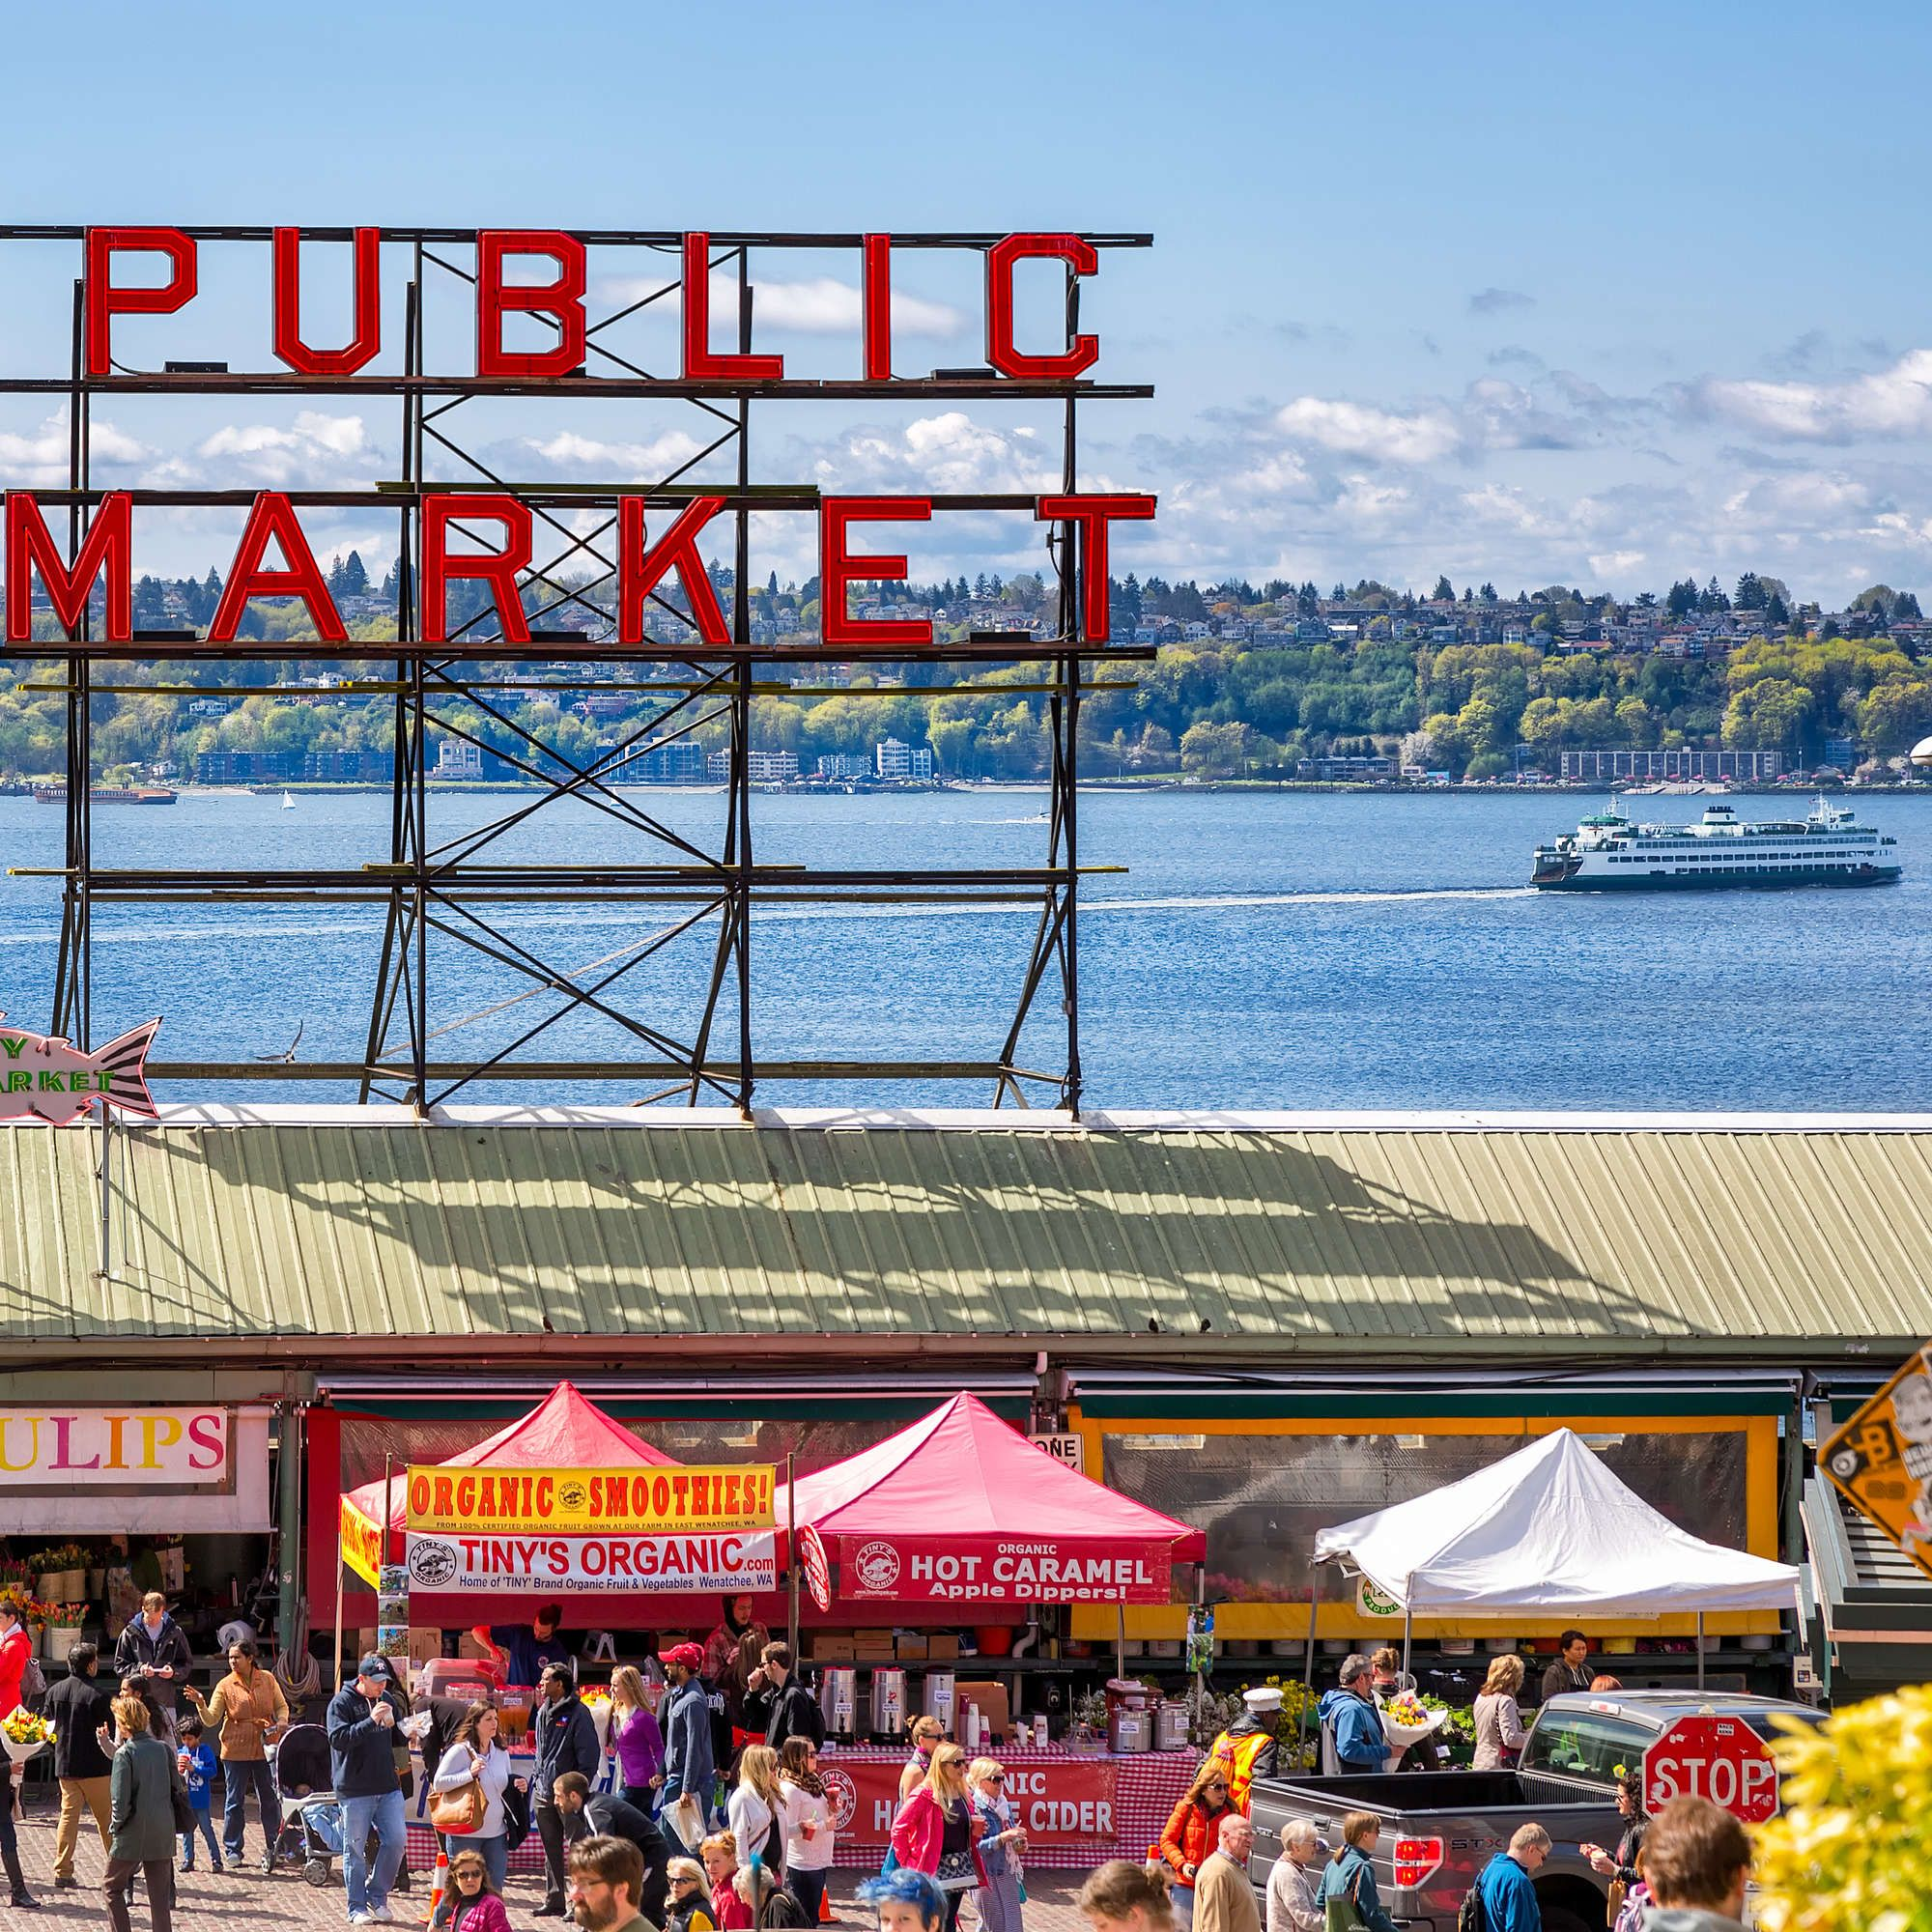 25 30 Seattle: The Best Things To Do In 25 Of America's Most Fun Cities